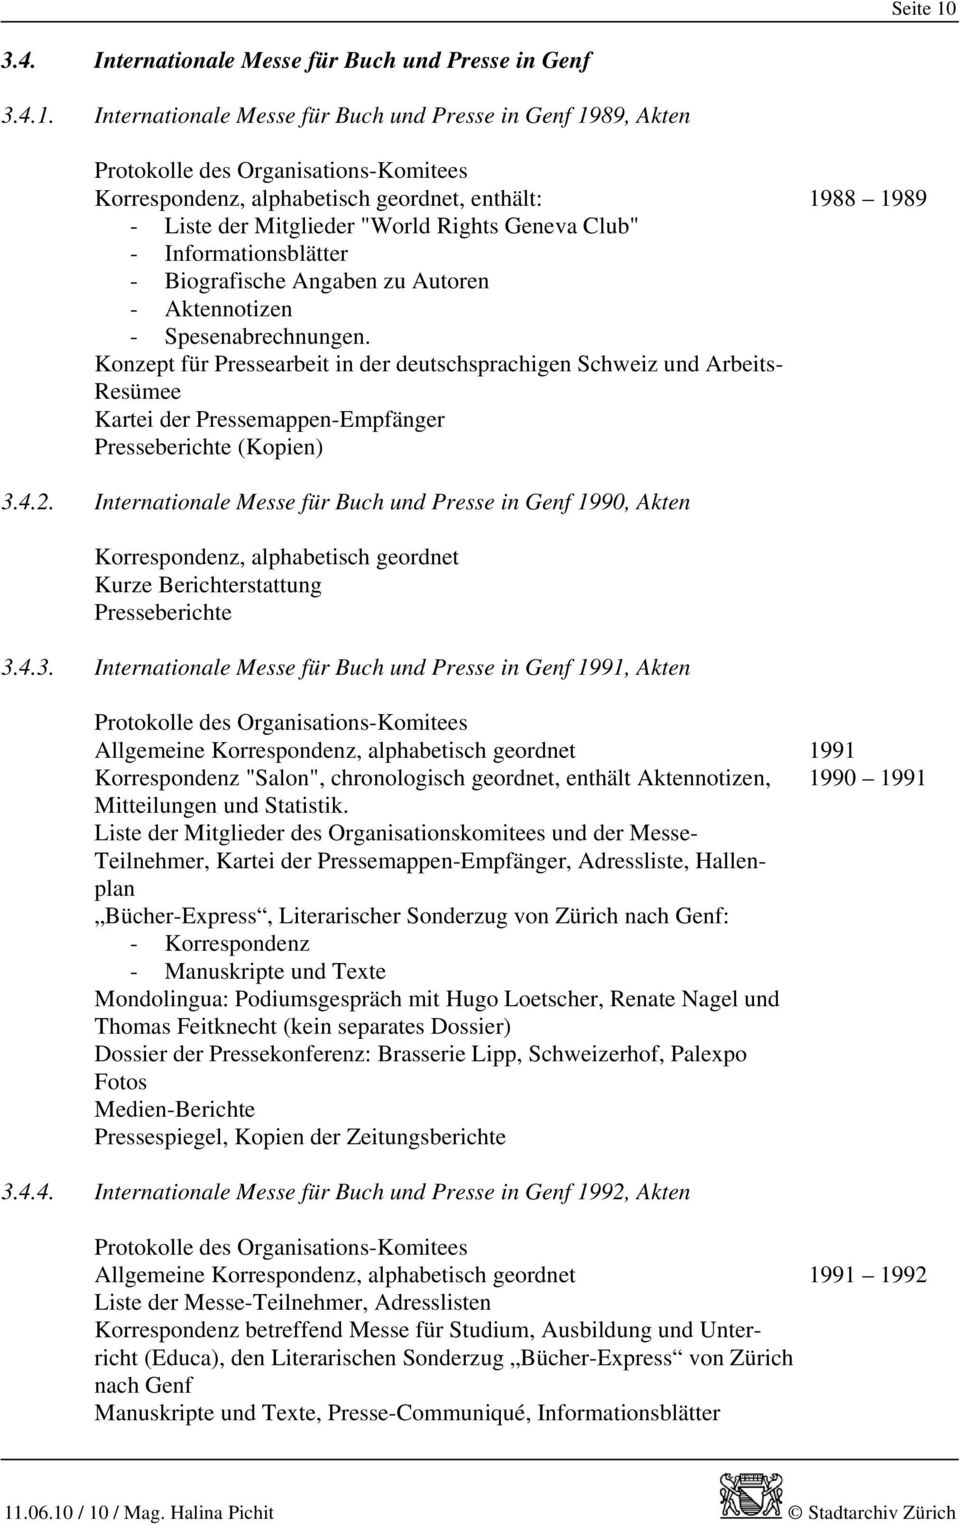 "Internationale Messe für Buch und Presse in Genf 1989, Akten Protokolle des Organisations-Komitees, alphabetisch geordnet, enthält: - Liste der Mitglieder ""World Rights Geneva Club"" -"